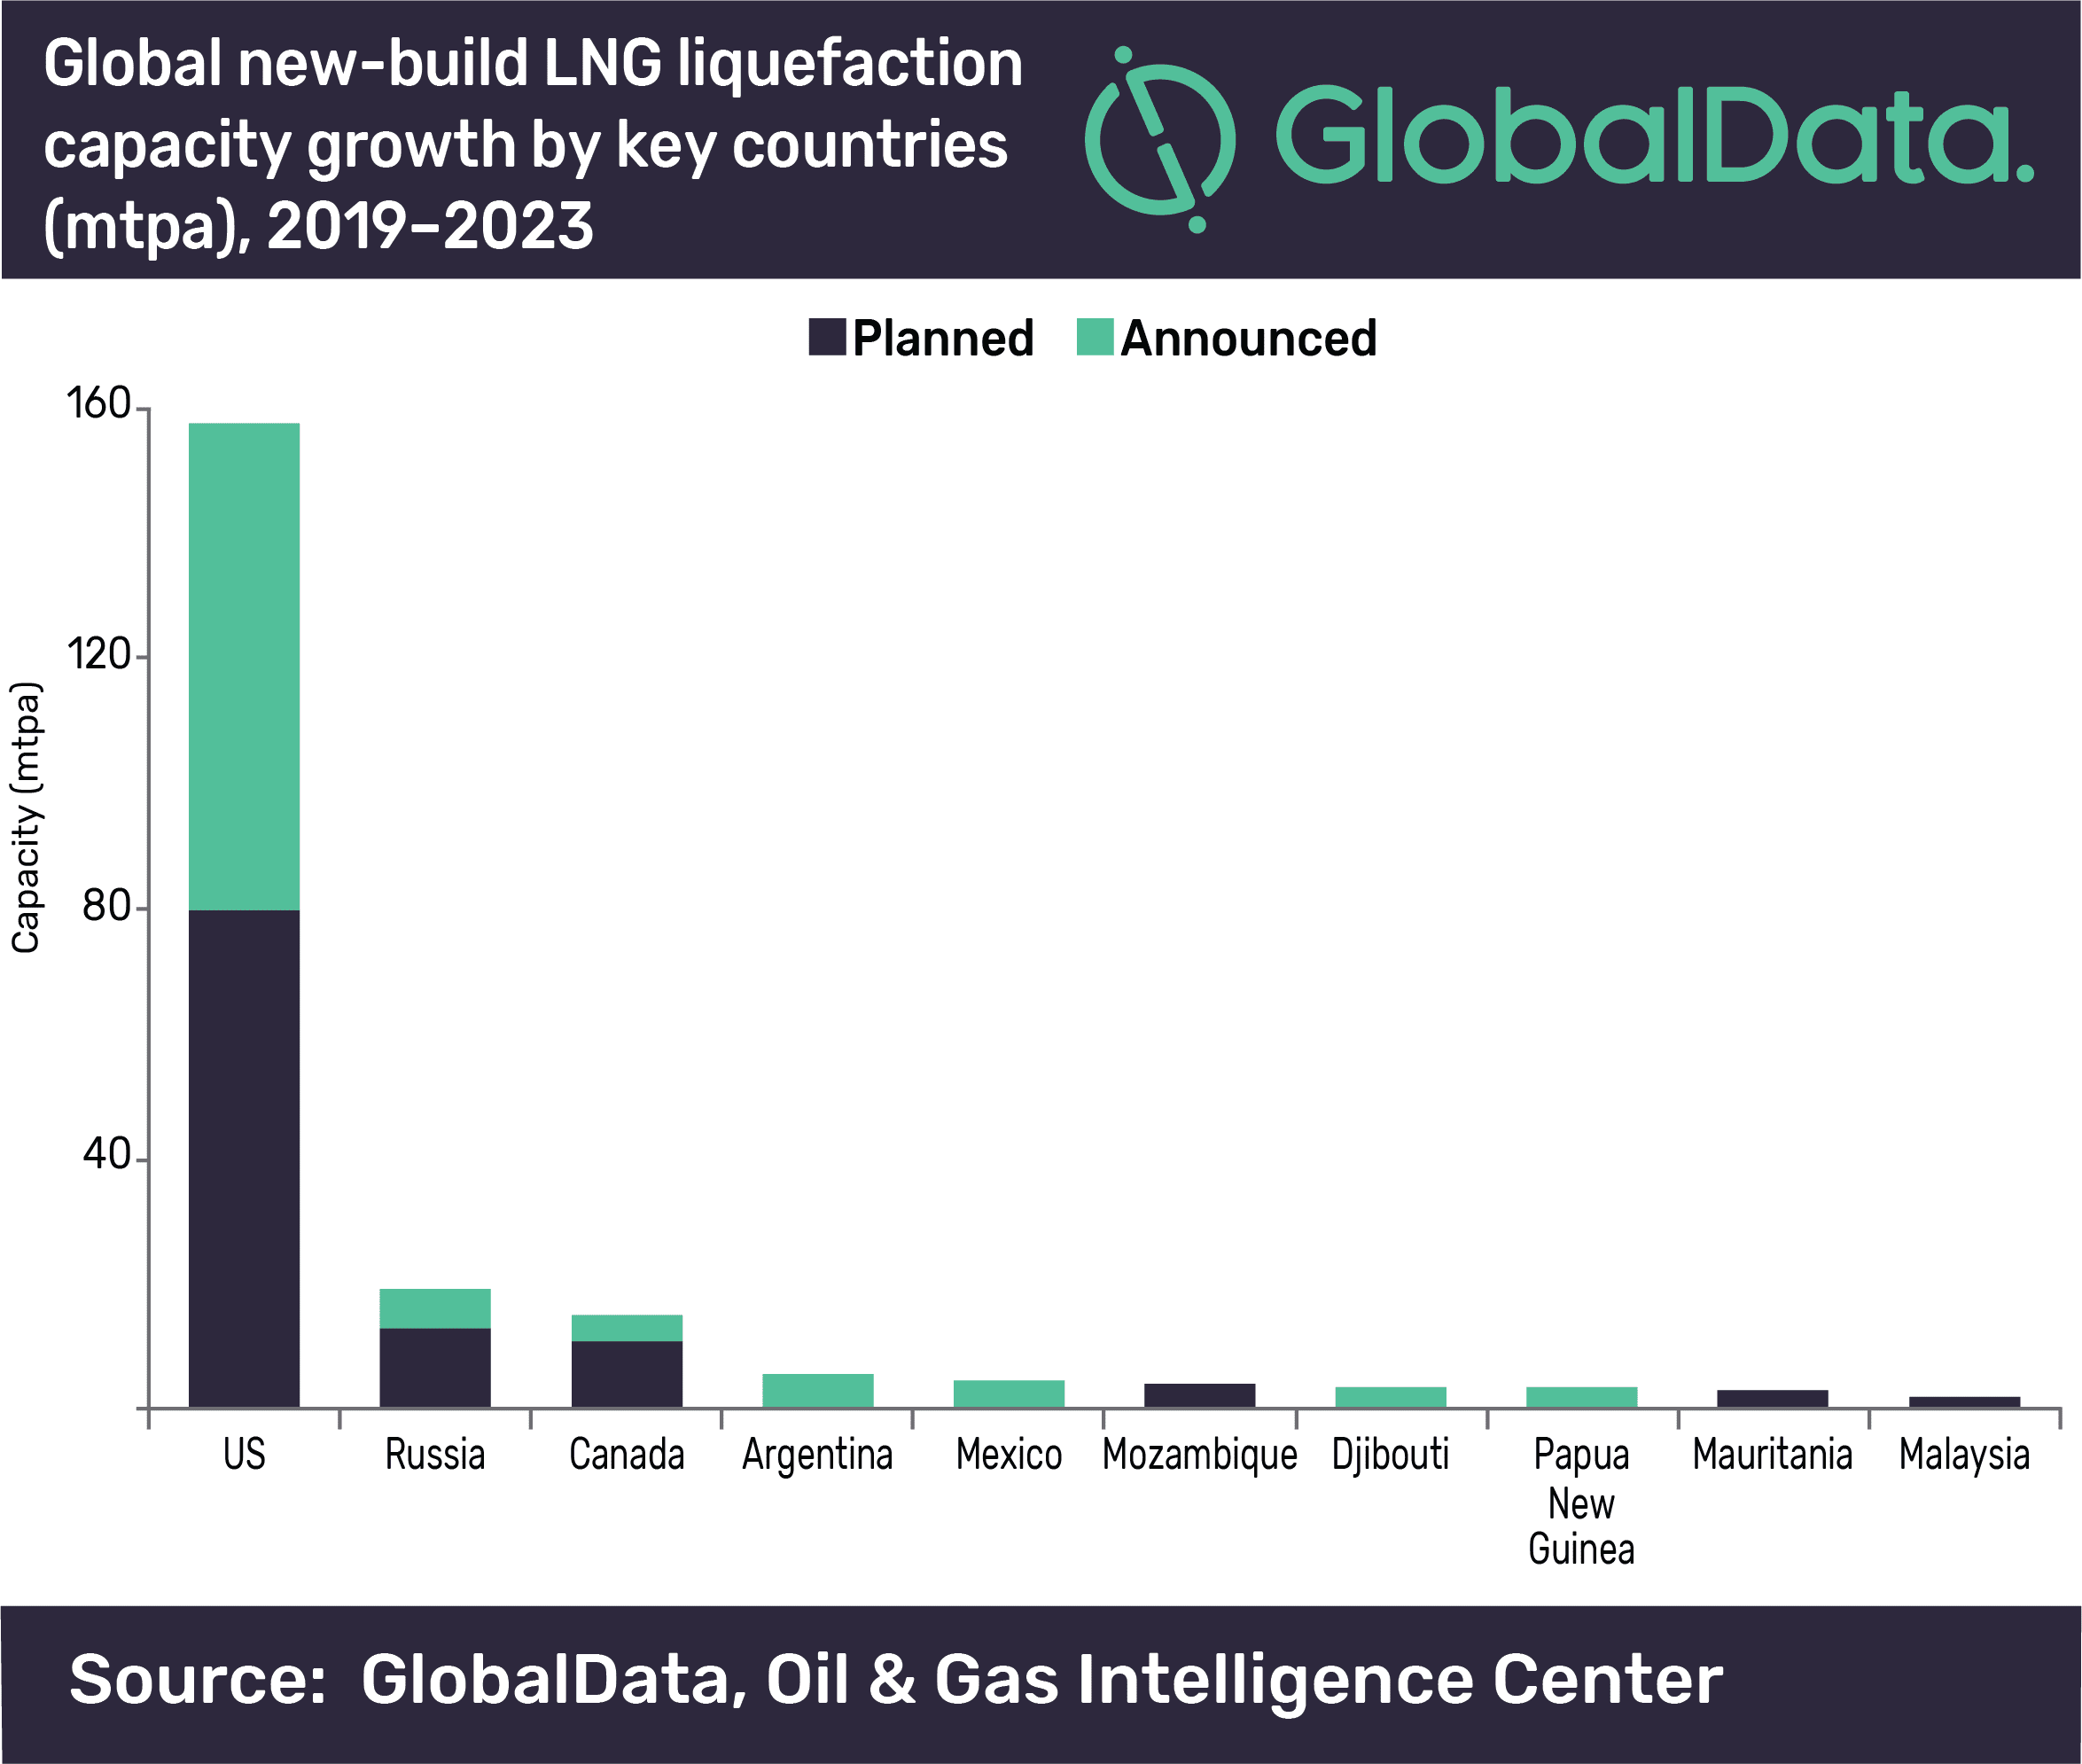 US will contribute 73% of global LNG liquefaction capacity growth by 2023